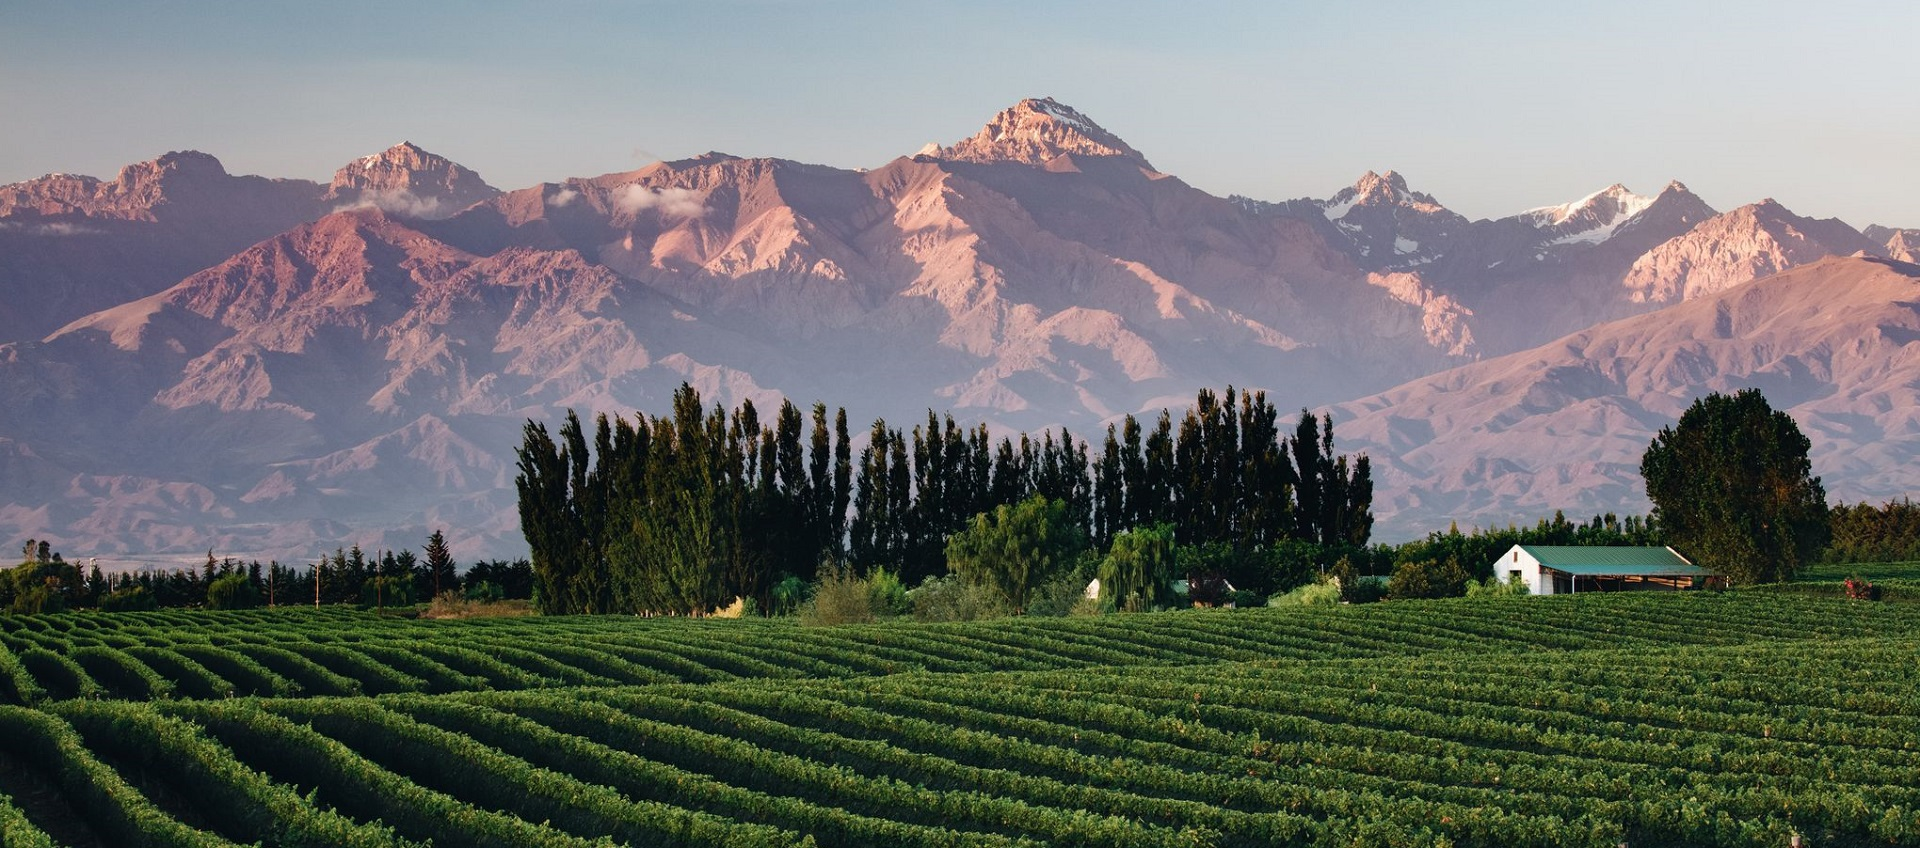 Argentina With Chateau Montelena